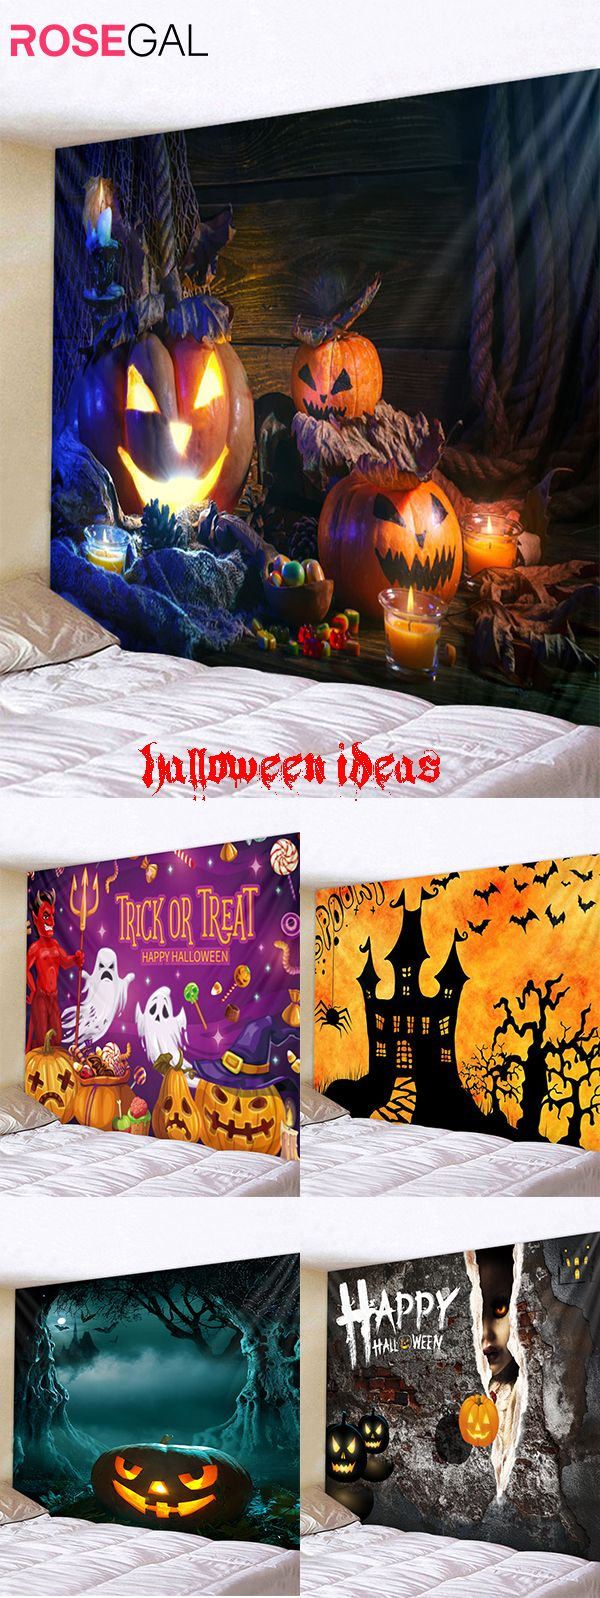 Free shipping over 45, up to 75 off, Rosegal Halloween